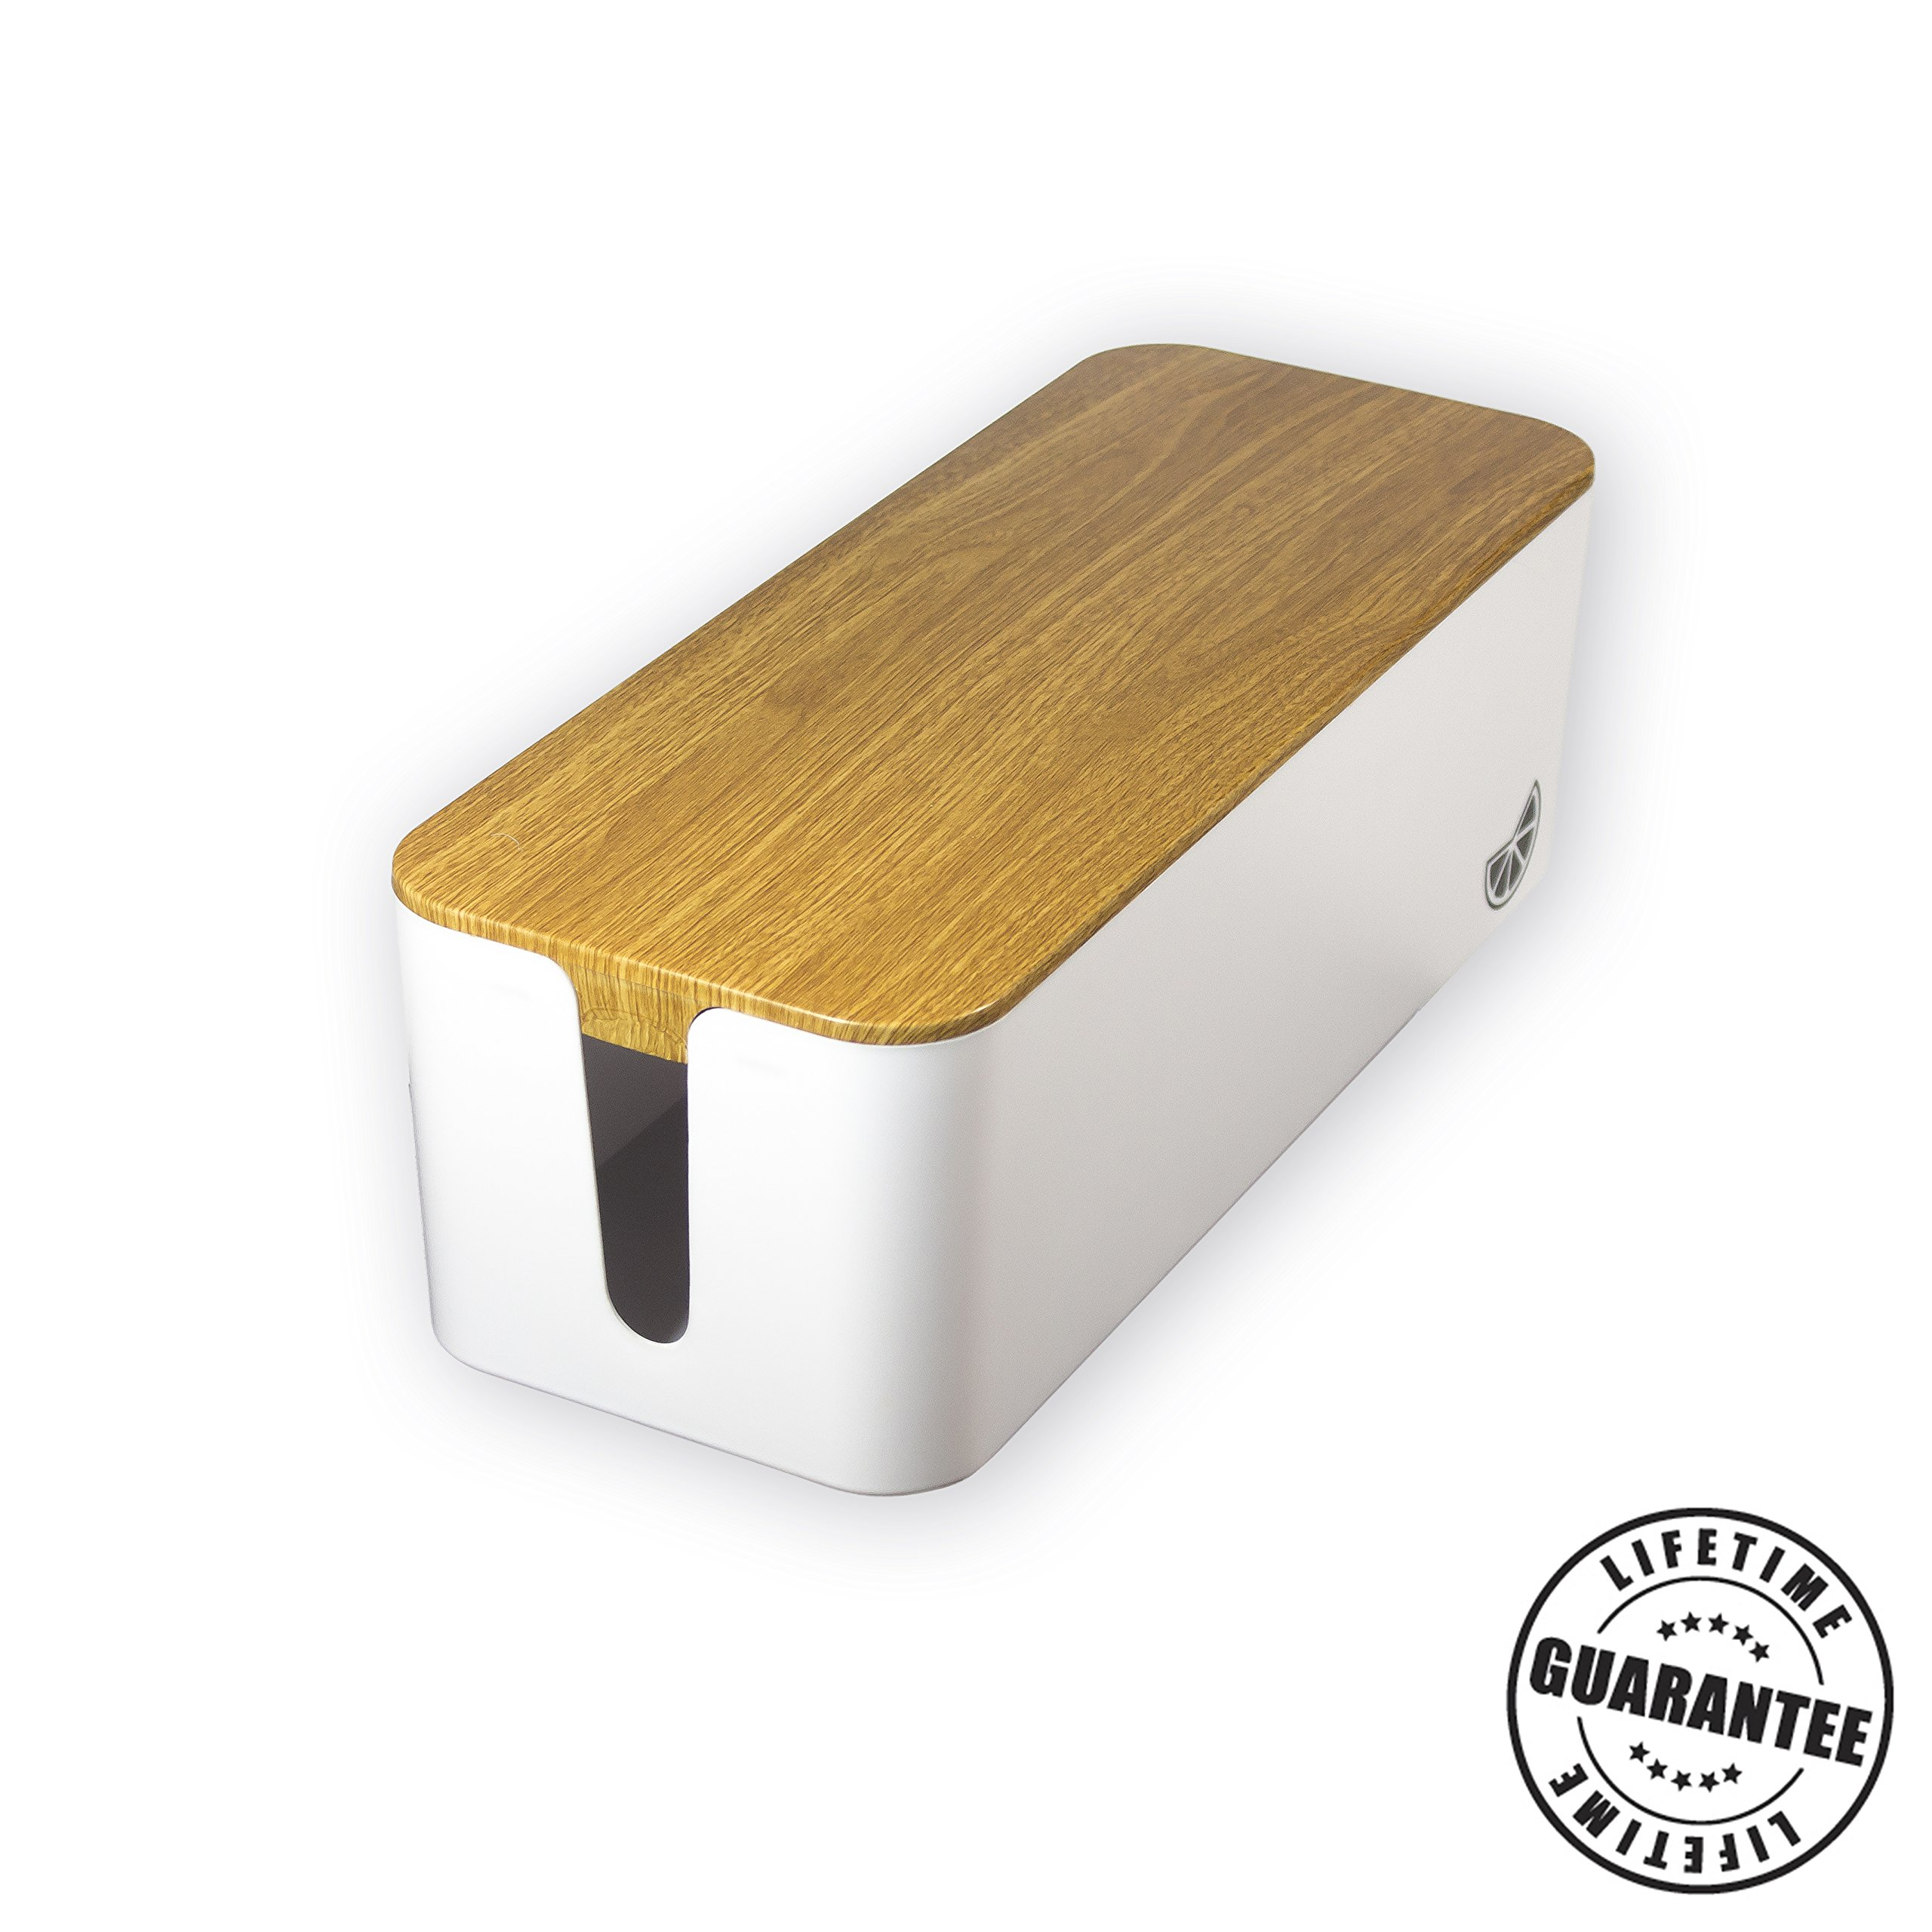 Premium Cable Management Box by Merchant Orange - Baby Proof Wire Covers Lid. Hides Power Strips and Chargers. The Best Large Wood Style White Box. Stylish Home, Office, and Desktop Floor Cover by Merchant Orange